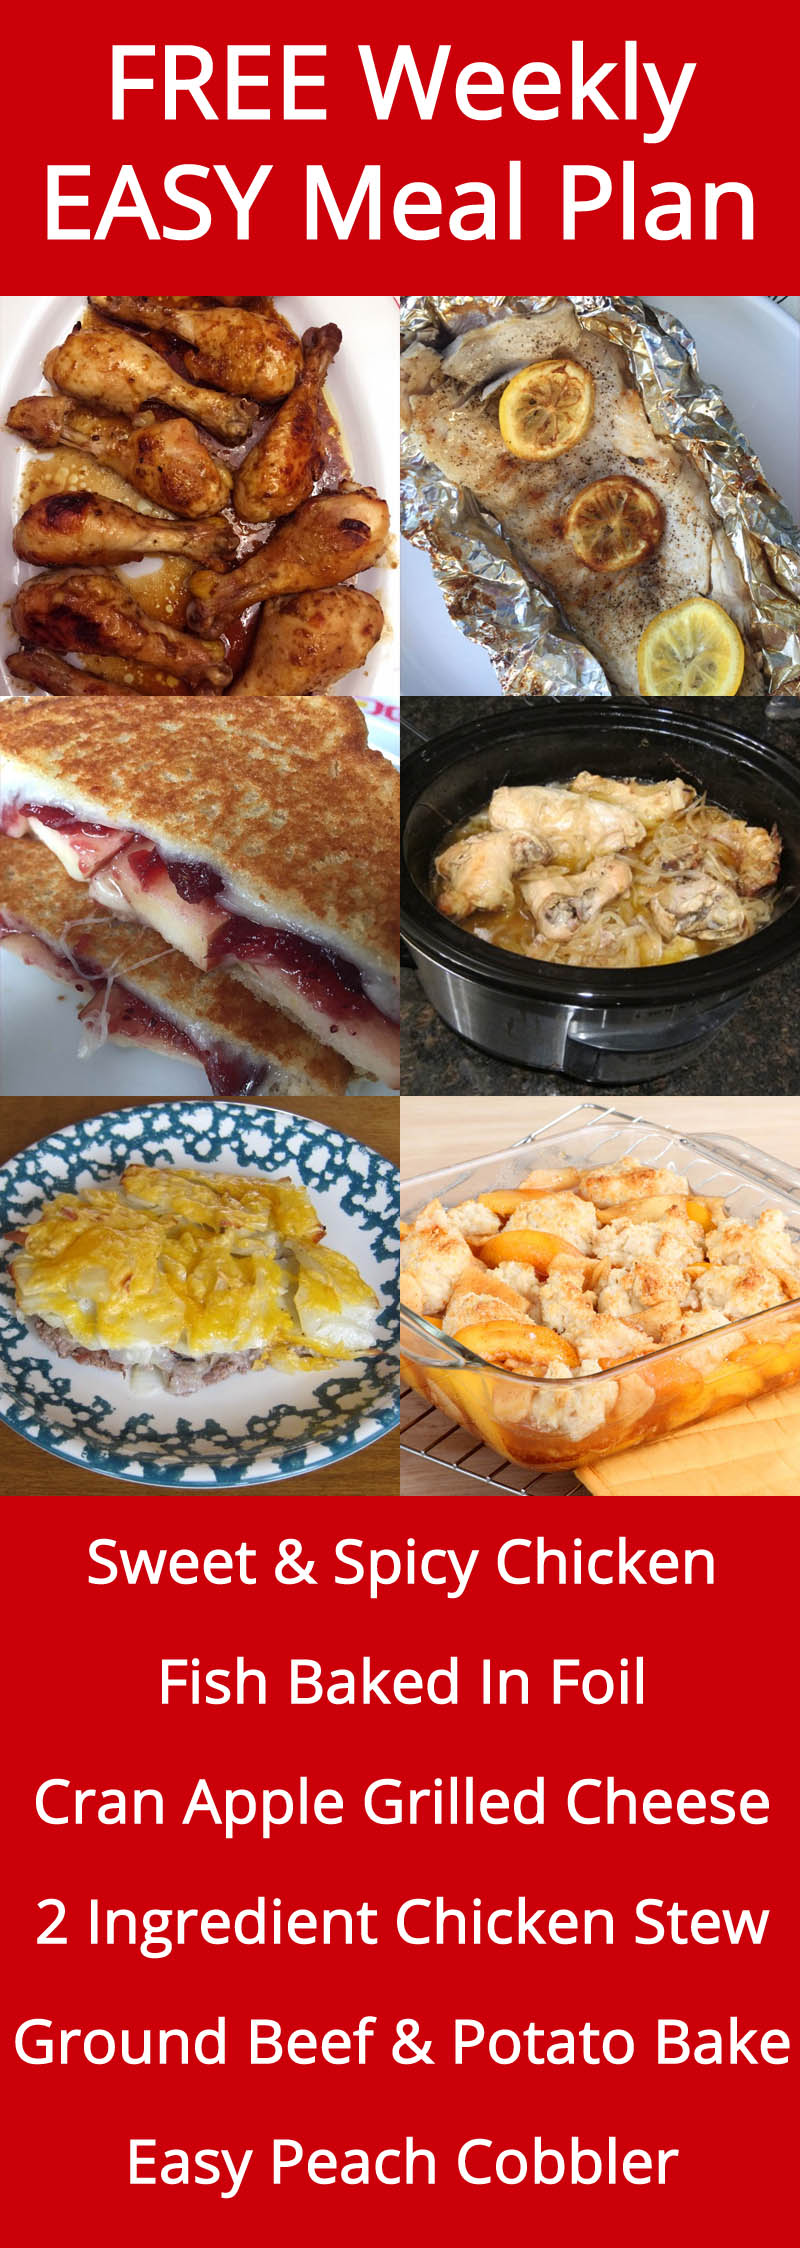 FREE Weekly Meal Plan With Easy And Yummy Recipes!   MelanieCooks.com